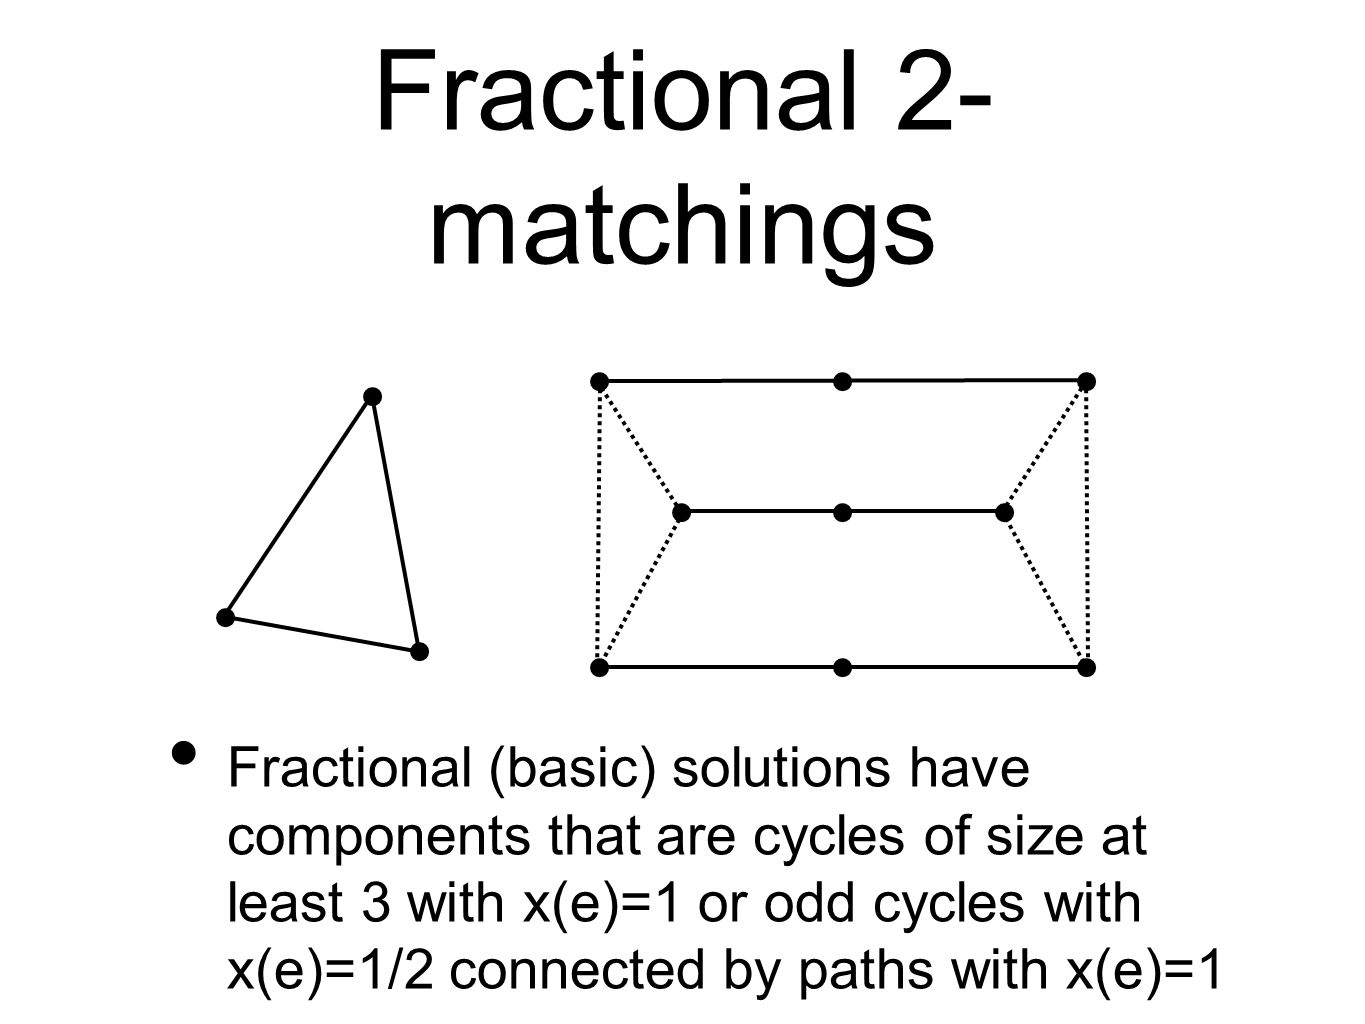 Fractional 2- matchings Fractional (basic) solutions have components that are cycles of size at least 3 with x(e)=1 or odd cycles with x(e)=1/2 connected by paths with x(e)=1